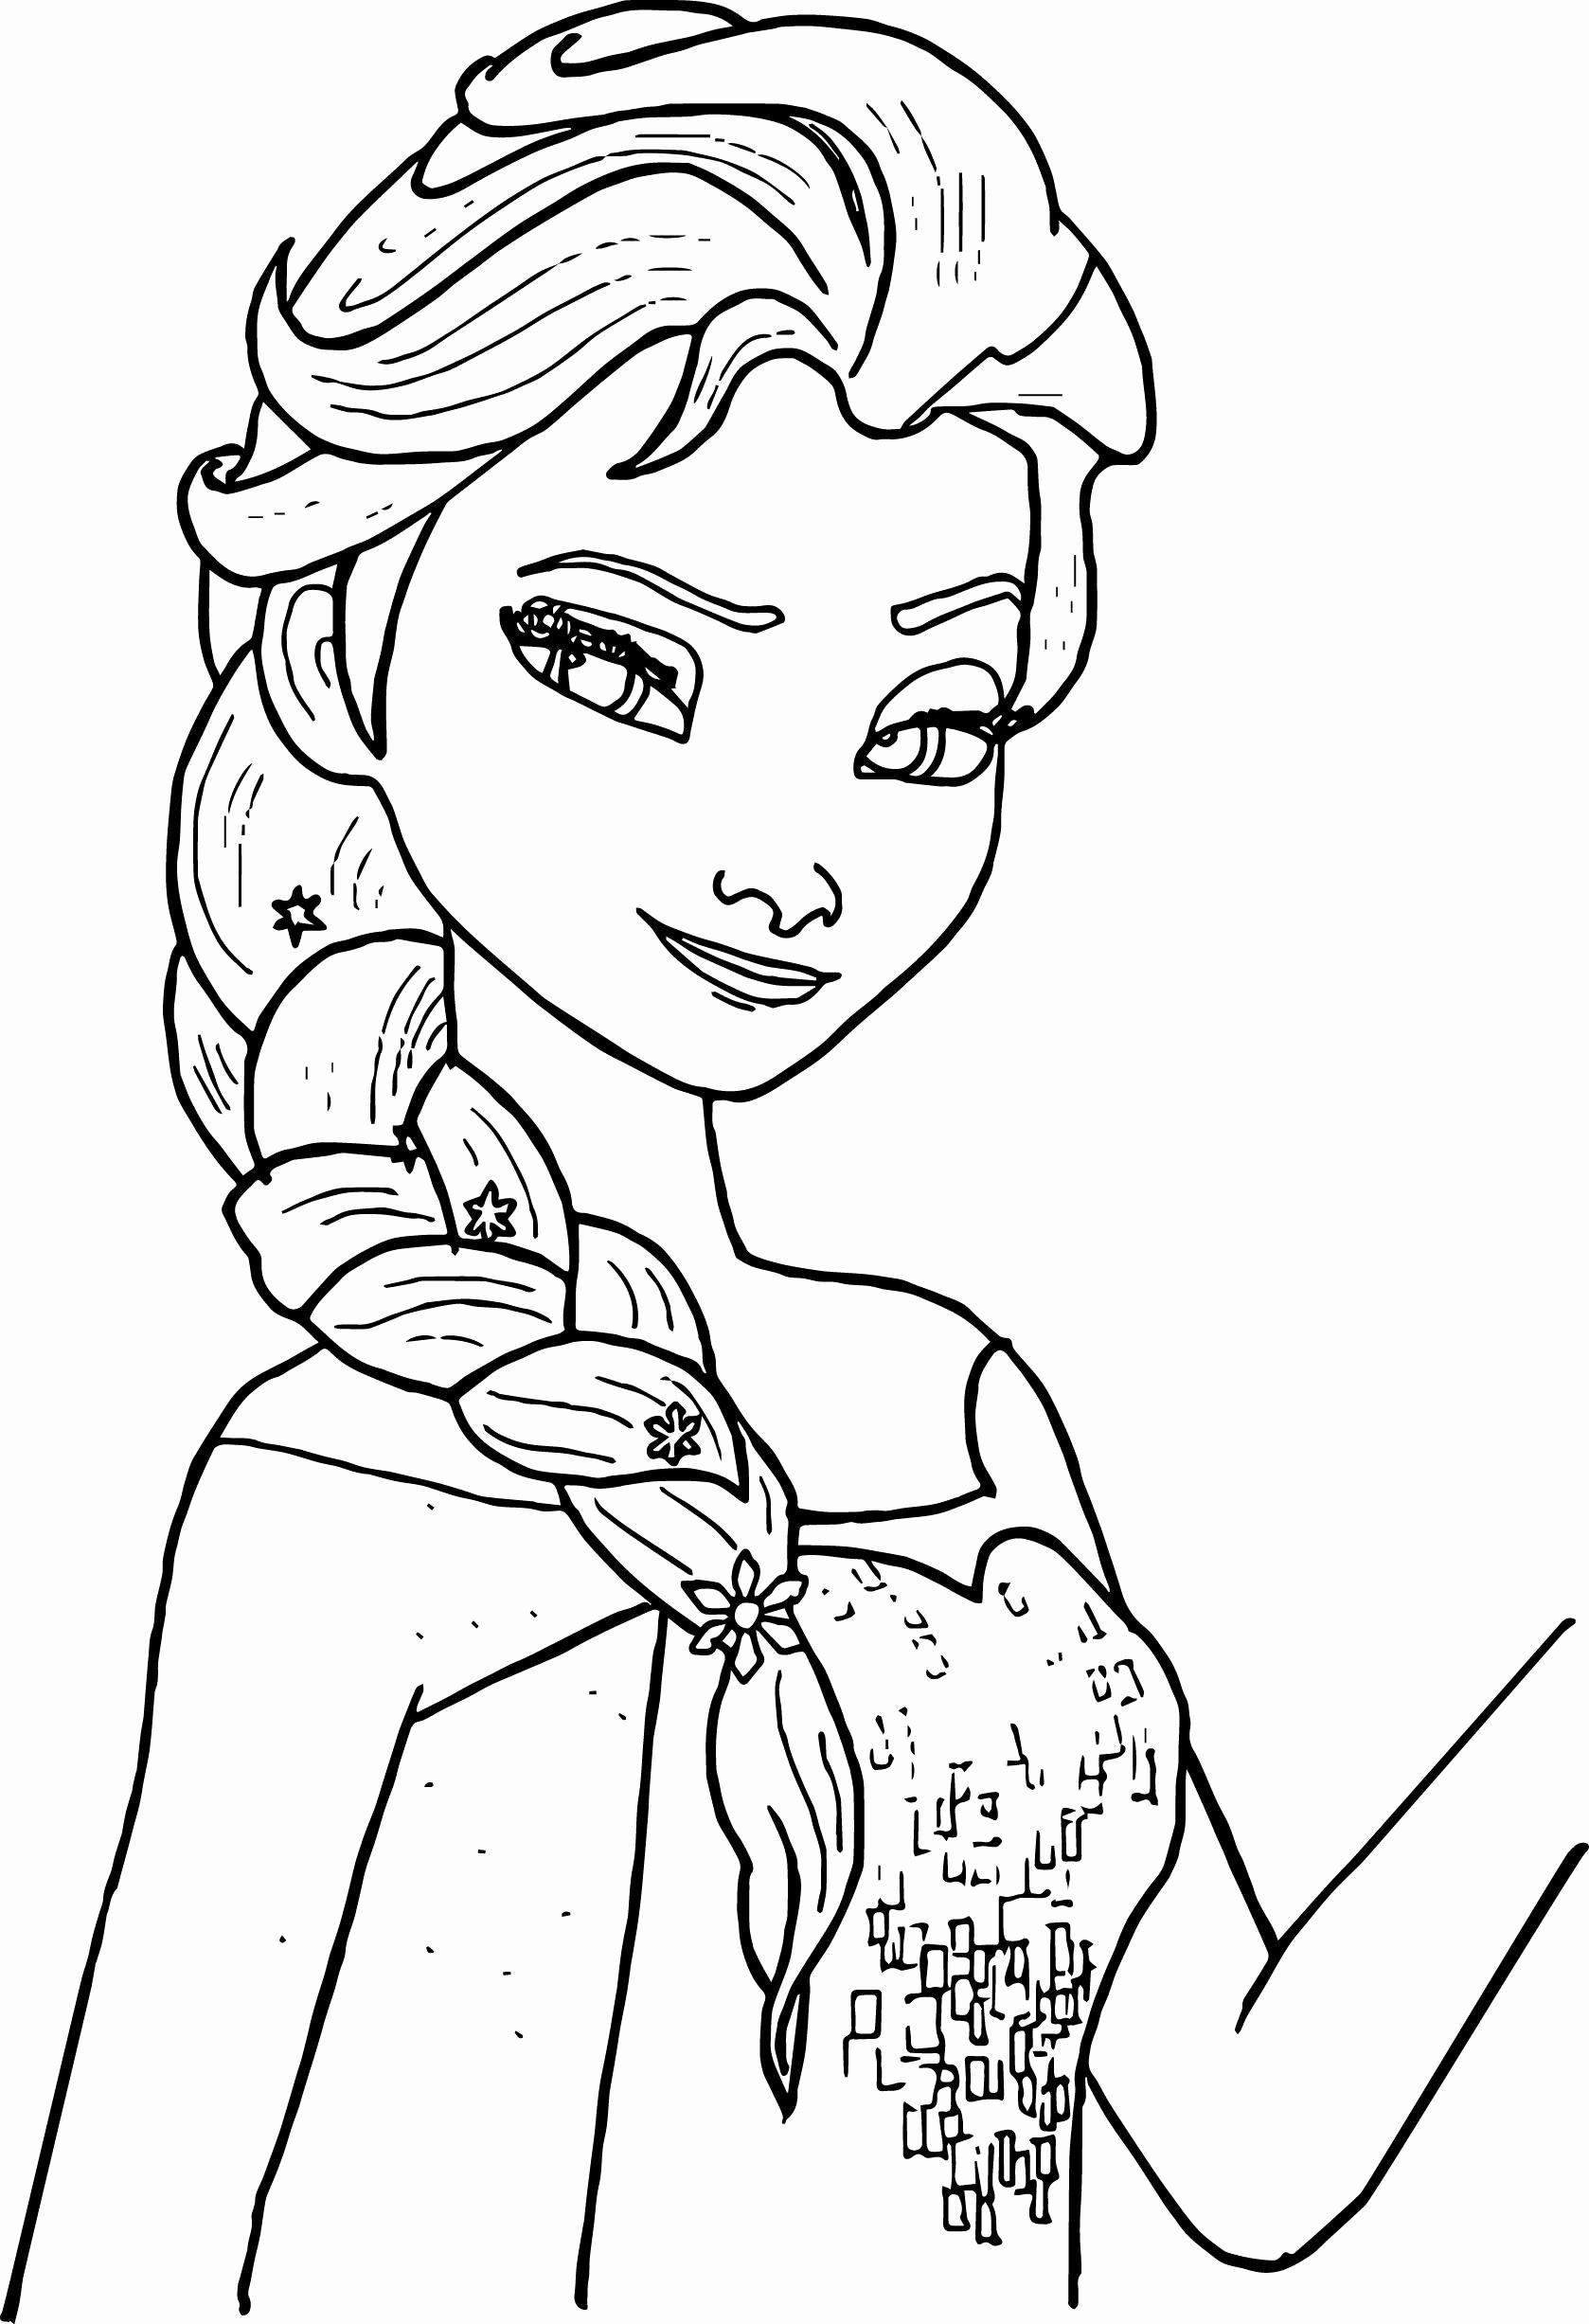 Coloring Pages For Kids Printables Best Of Karlar Ulkesi Elsa Boyama Sayfalari In 2020 Frozen Coloring Pages Disney Coloring Pages Princess Coloring Pages